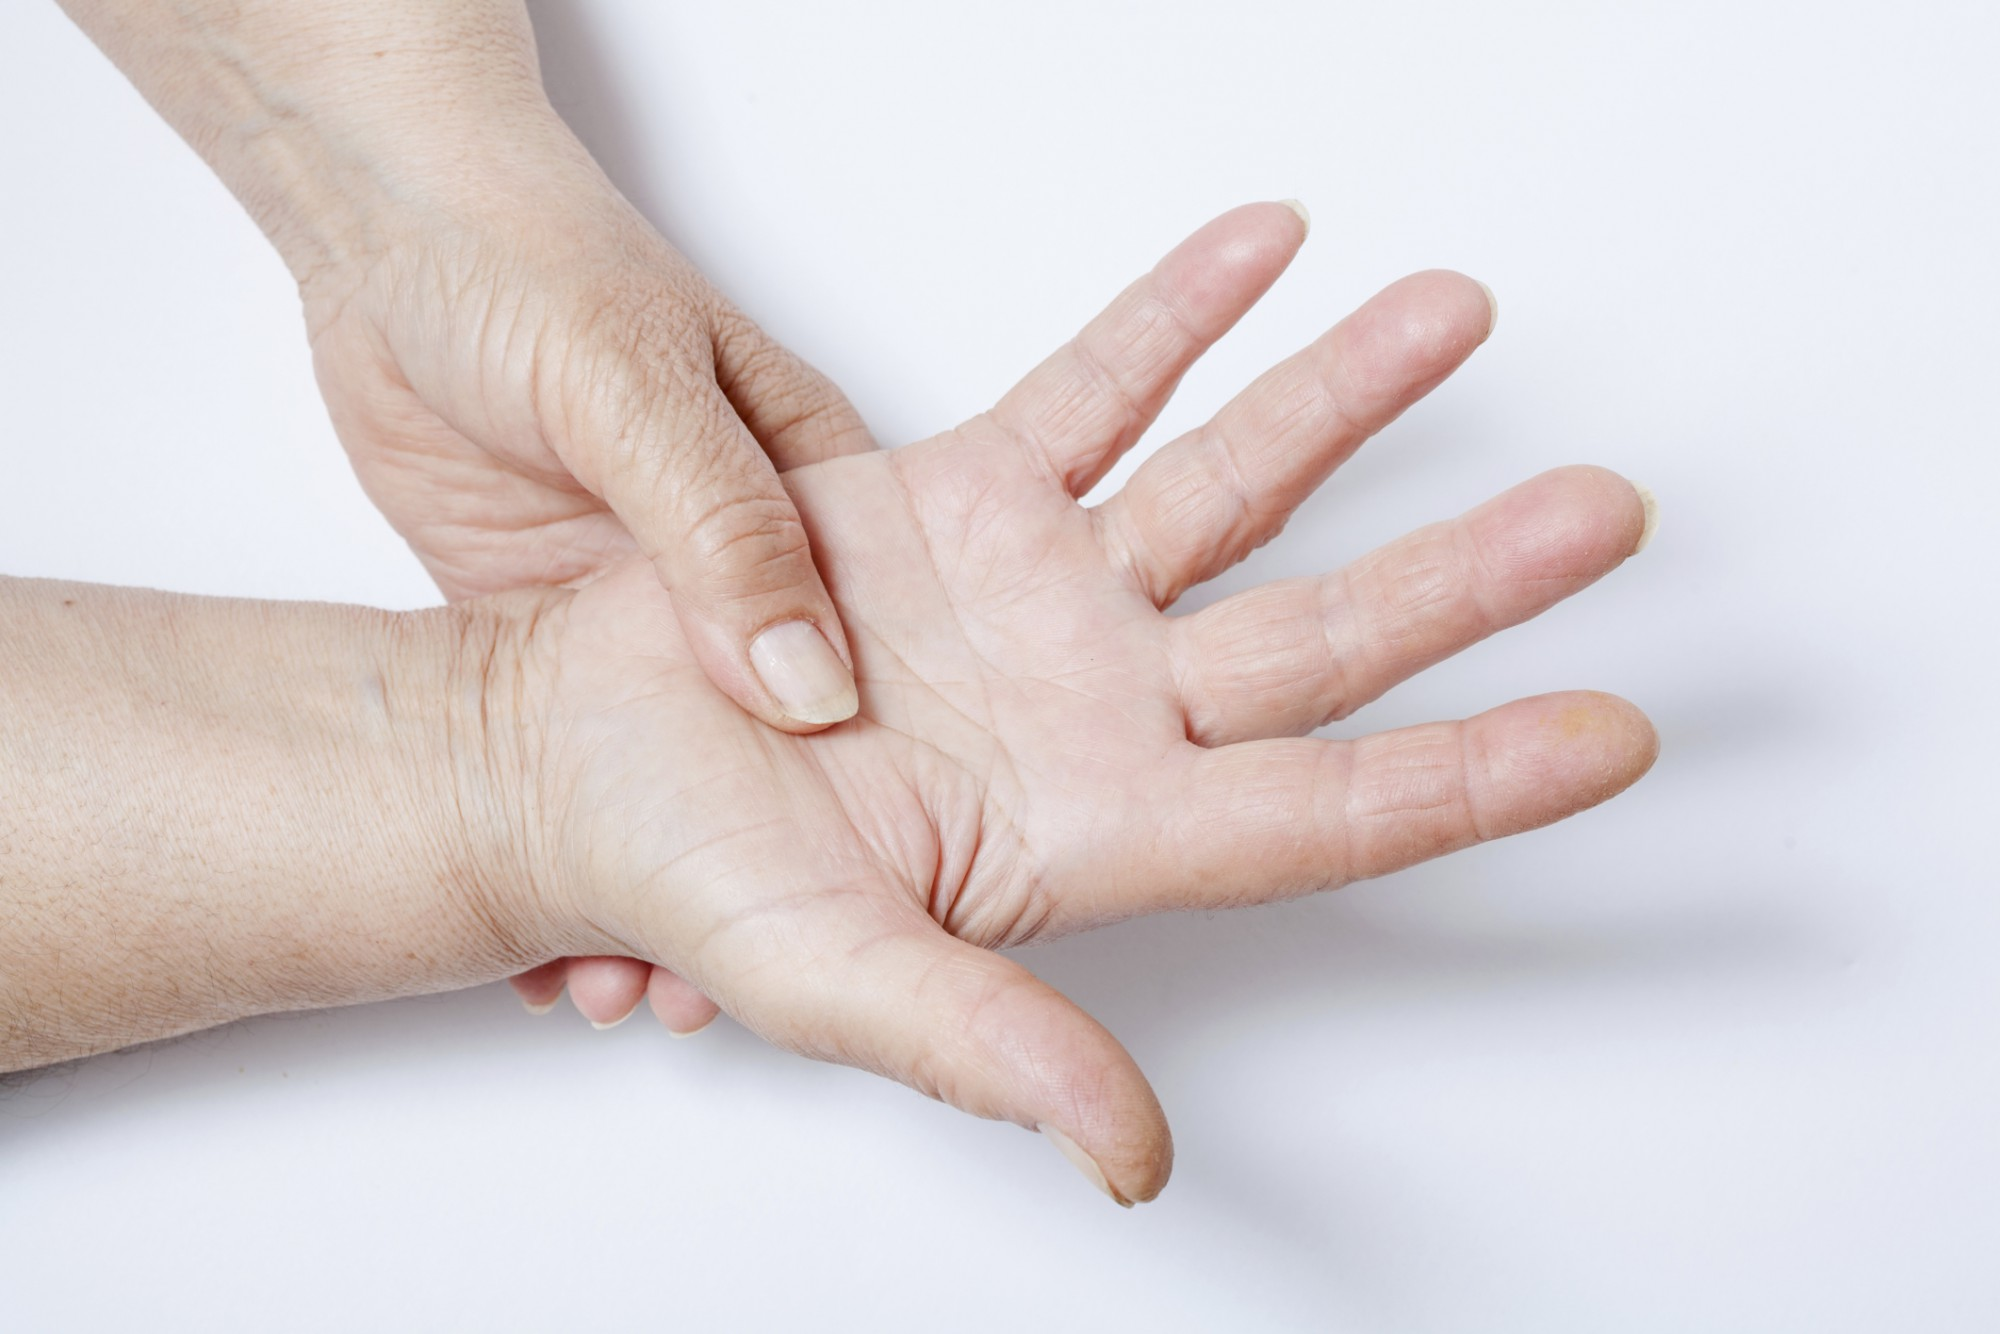 Natural ways to deal with the pain of fibromyalgia